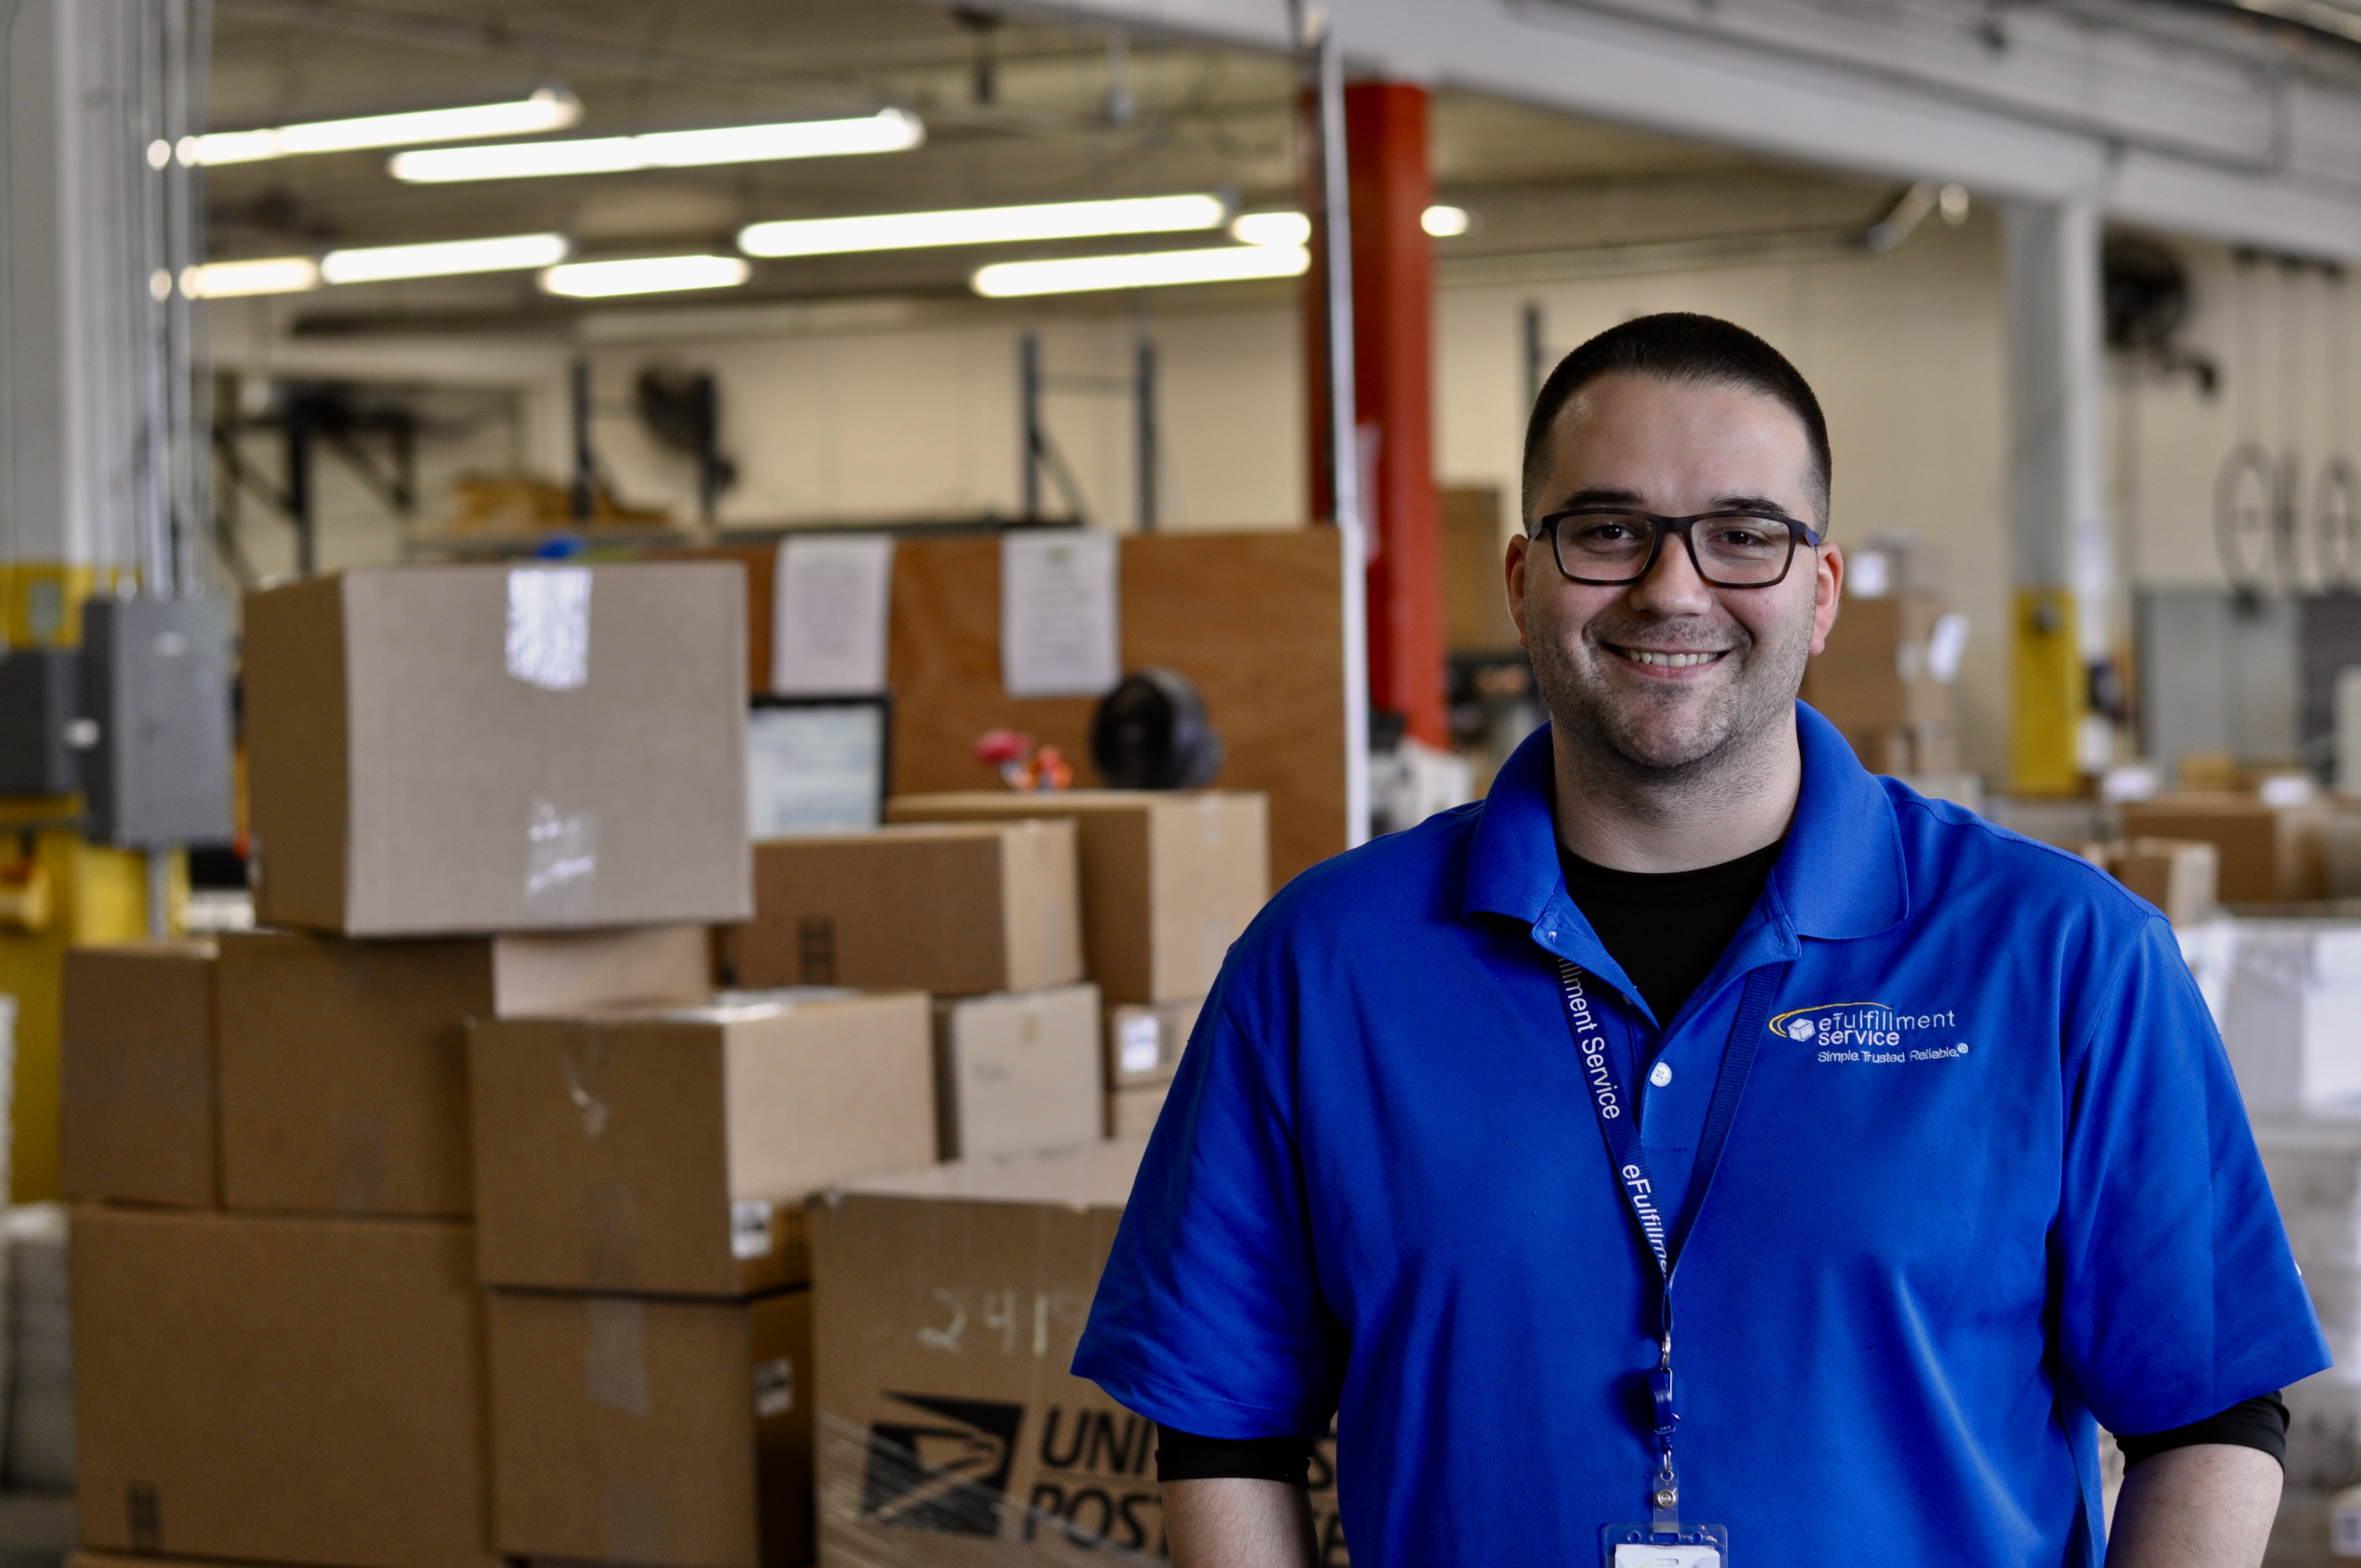 Claycomb to Fill Warehouse Manager Role at EFS